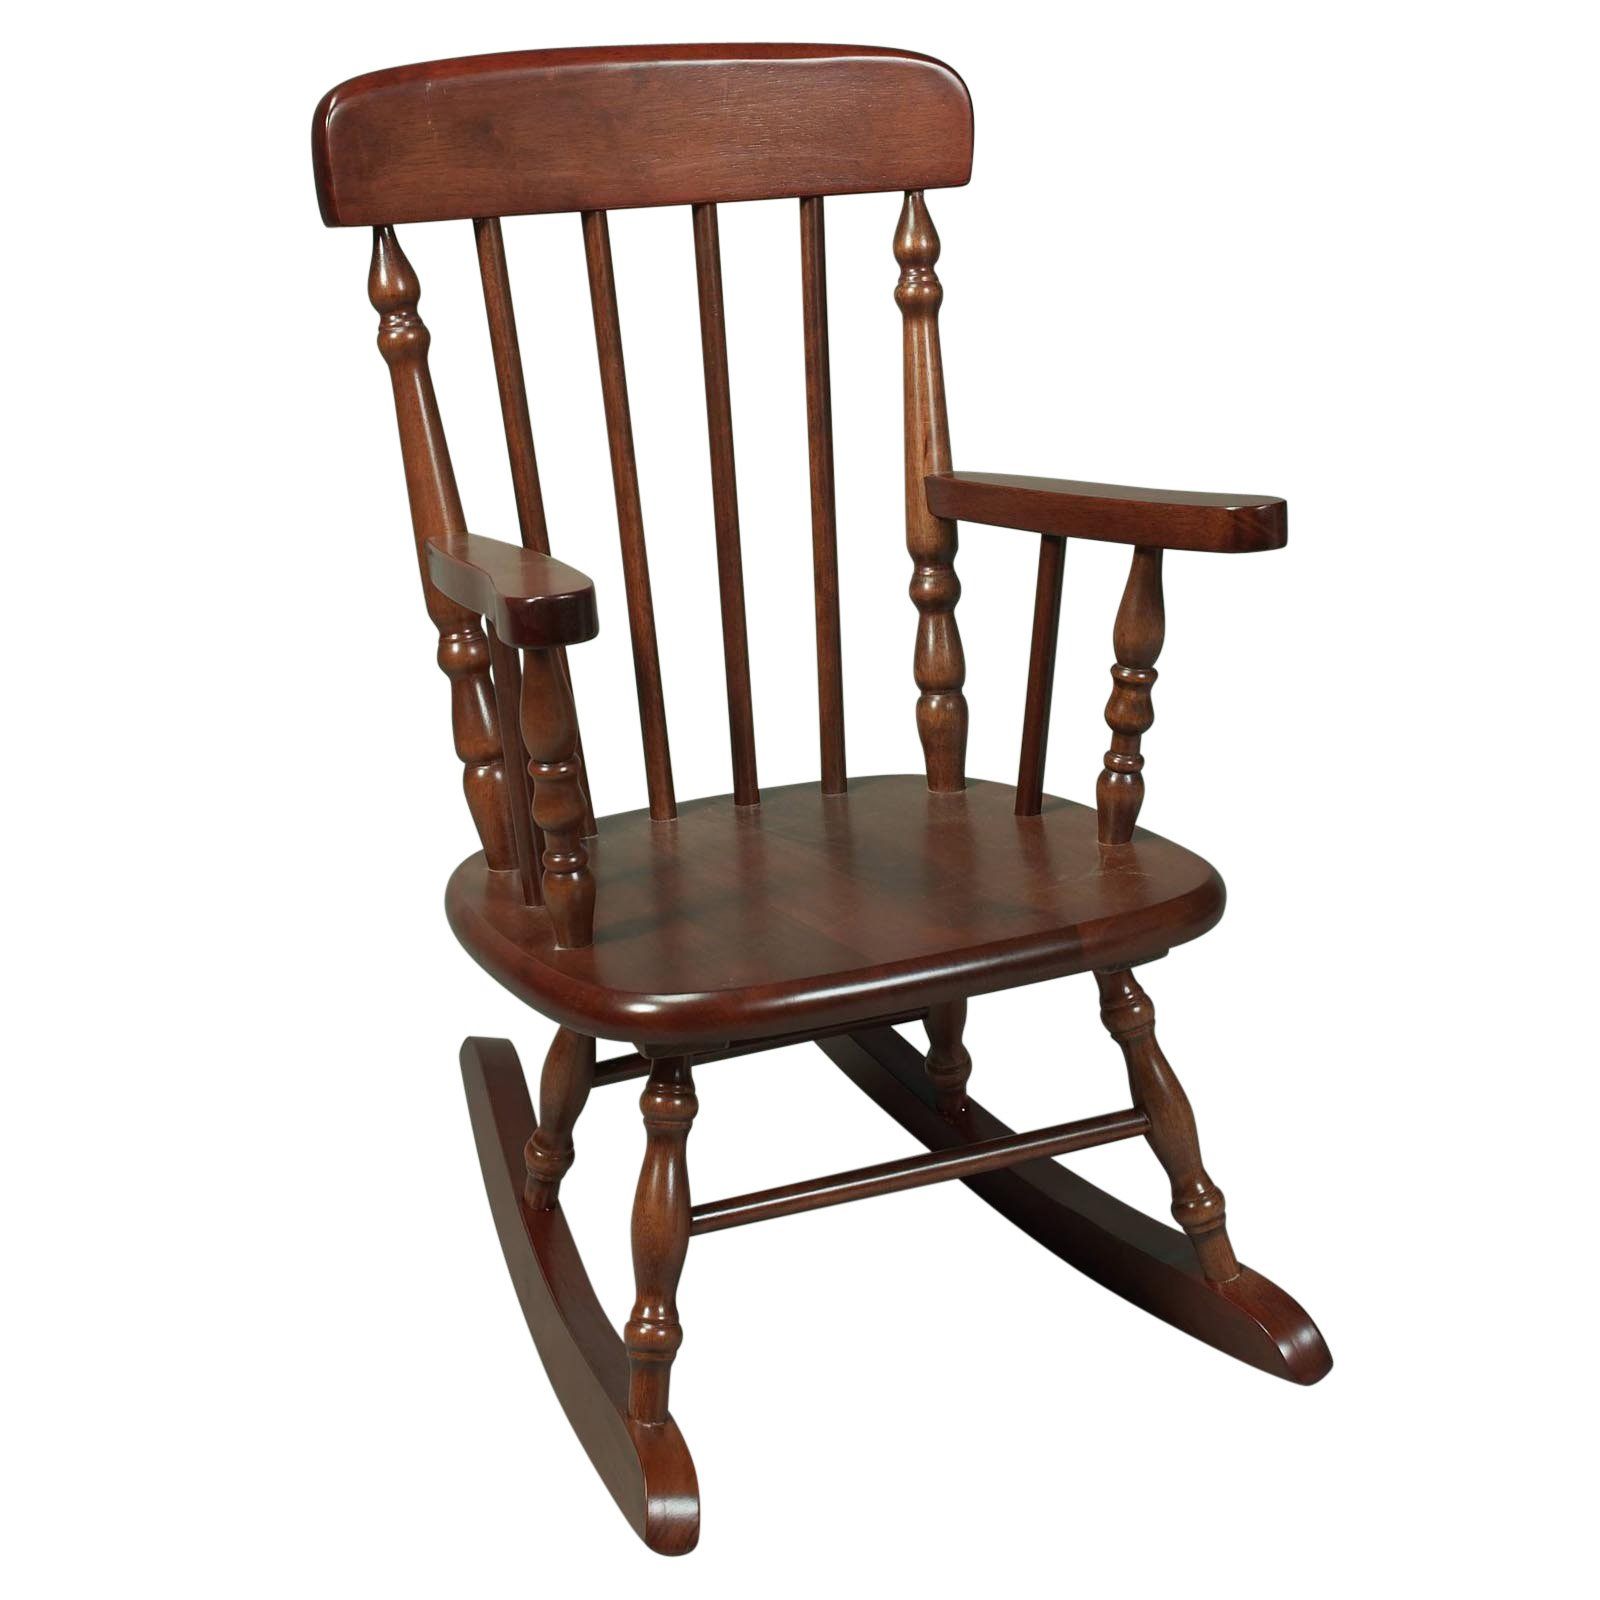 Image of: Rustic Childrens Rocking Chair